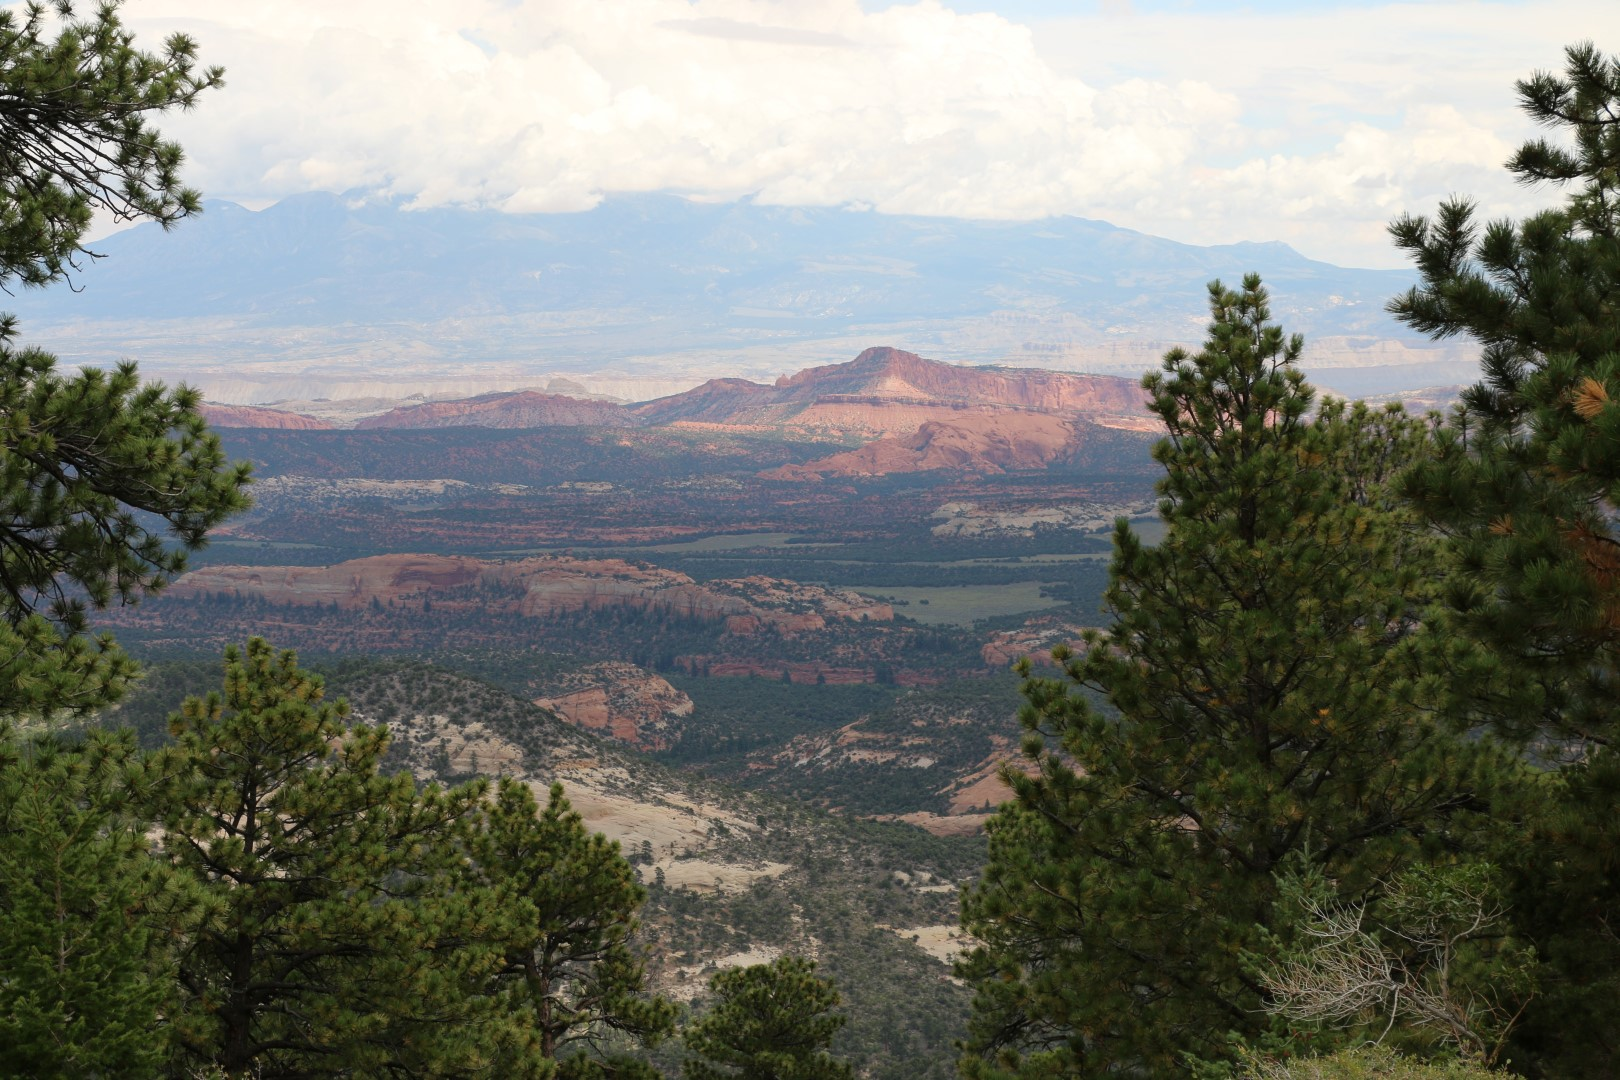 View towards Capitol Reef